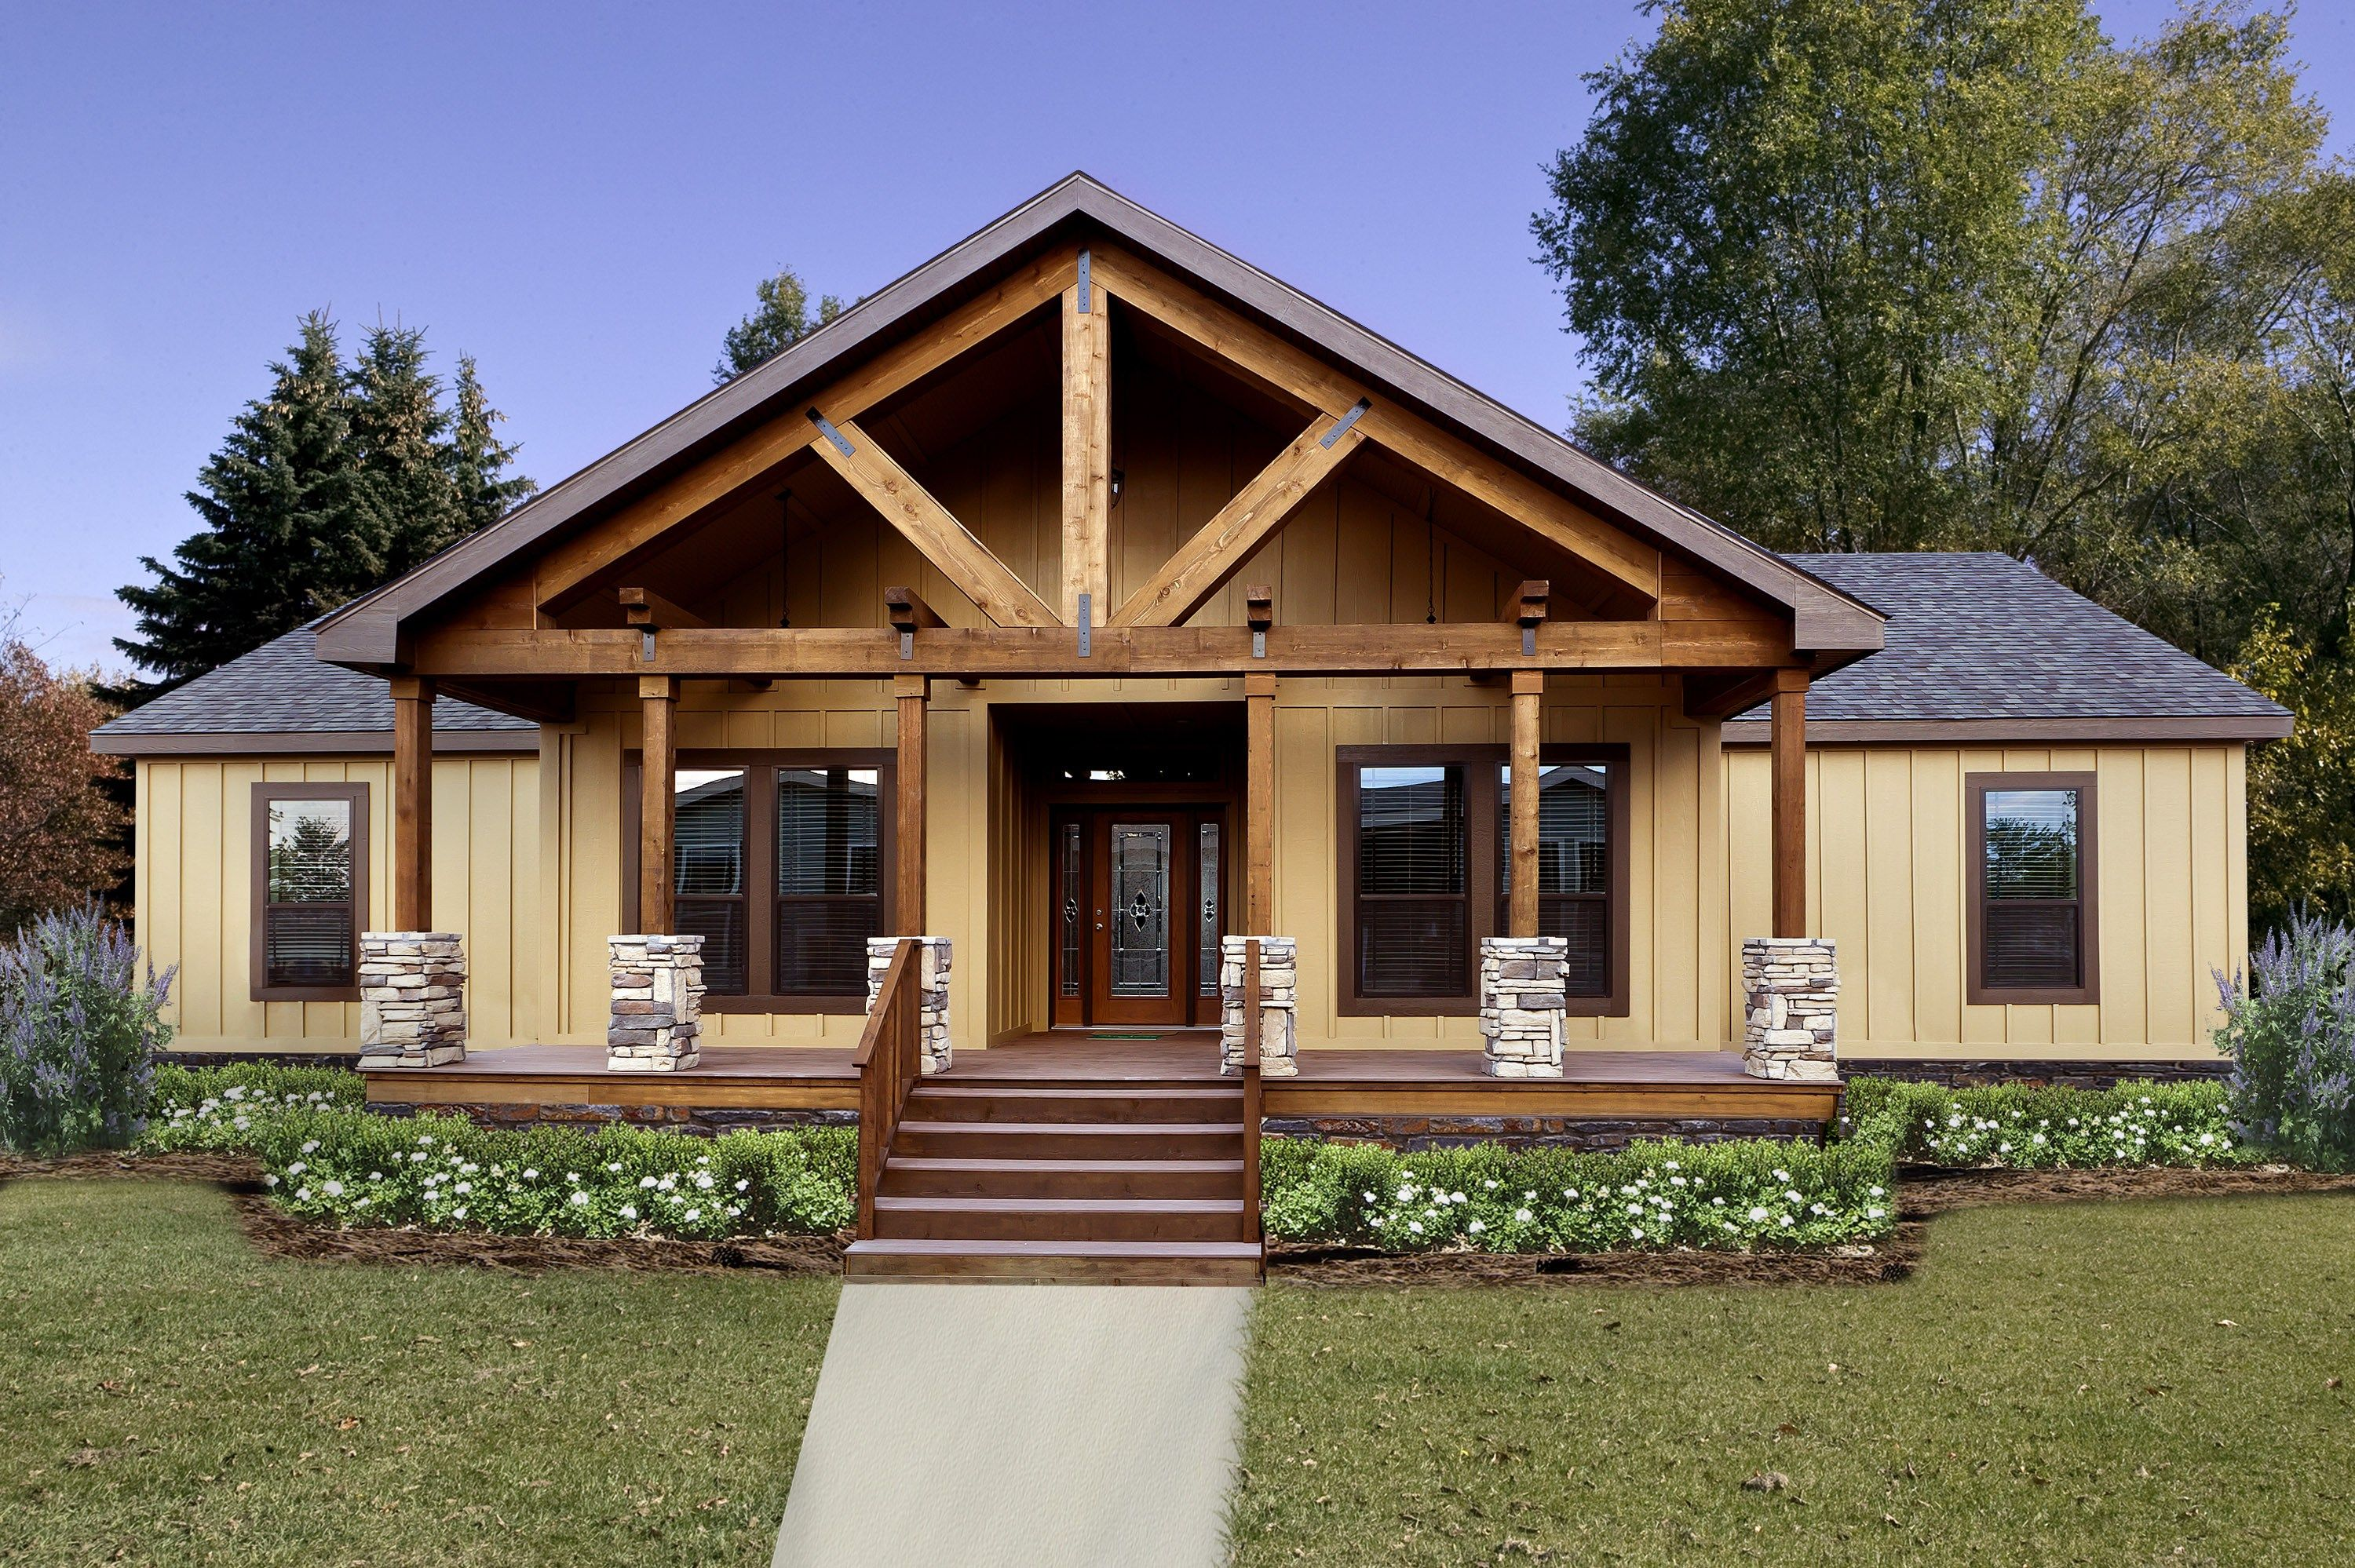 Best 25+ Modular homes for sale ideas on Pinterest | Rural land for sale, Prefab  homes for sale and Mobile homes for sale